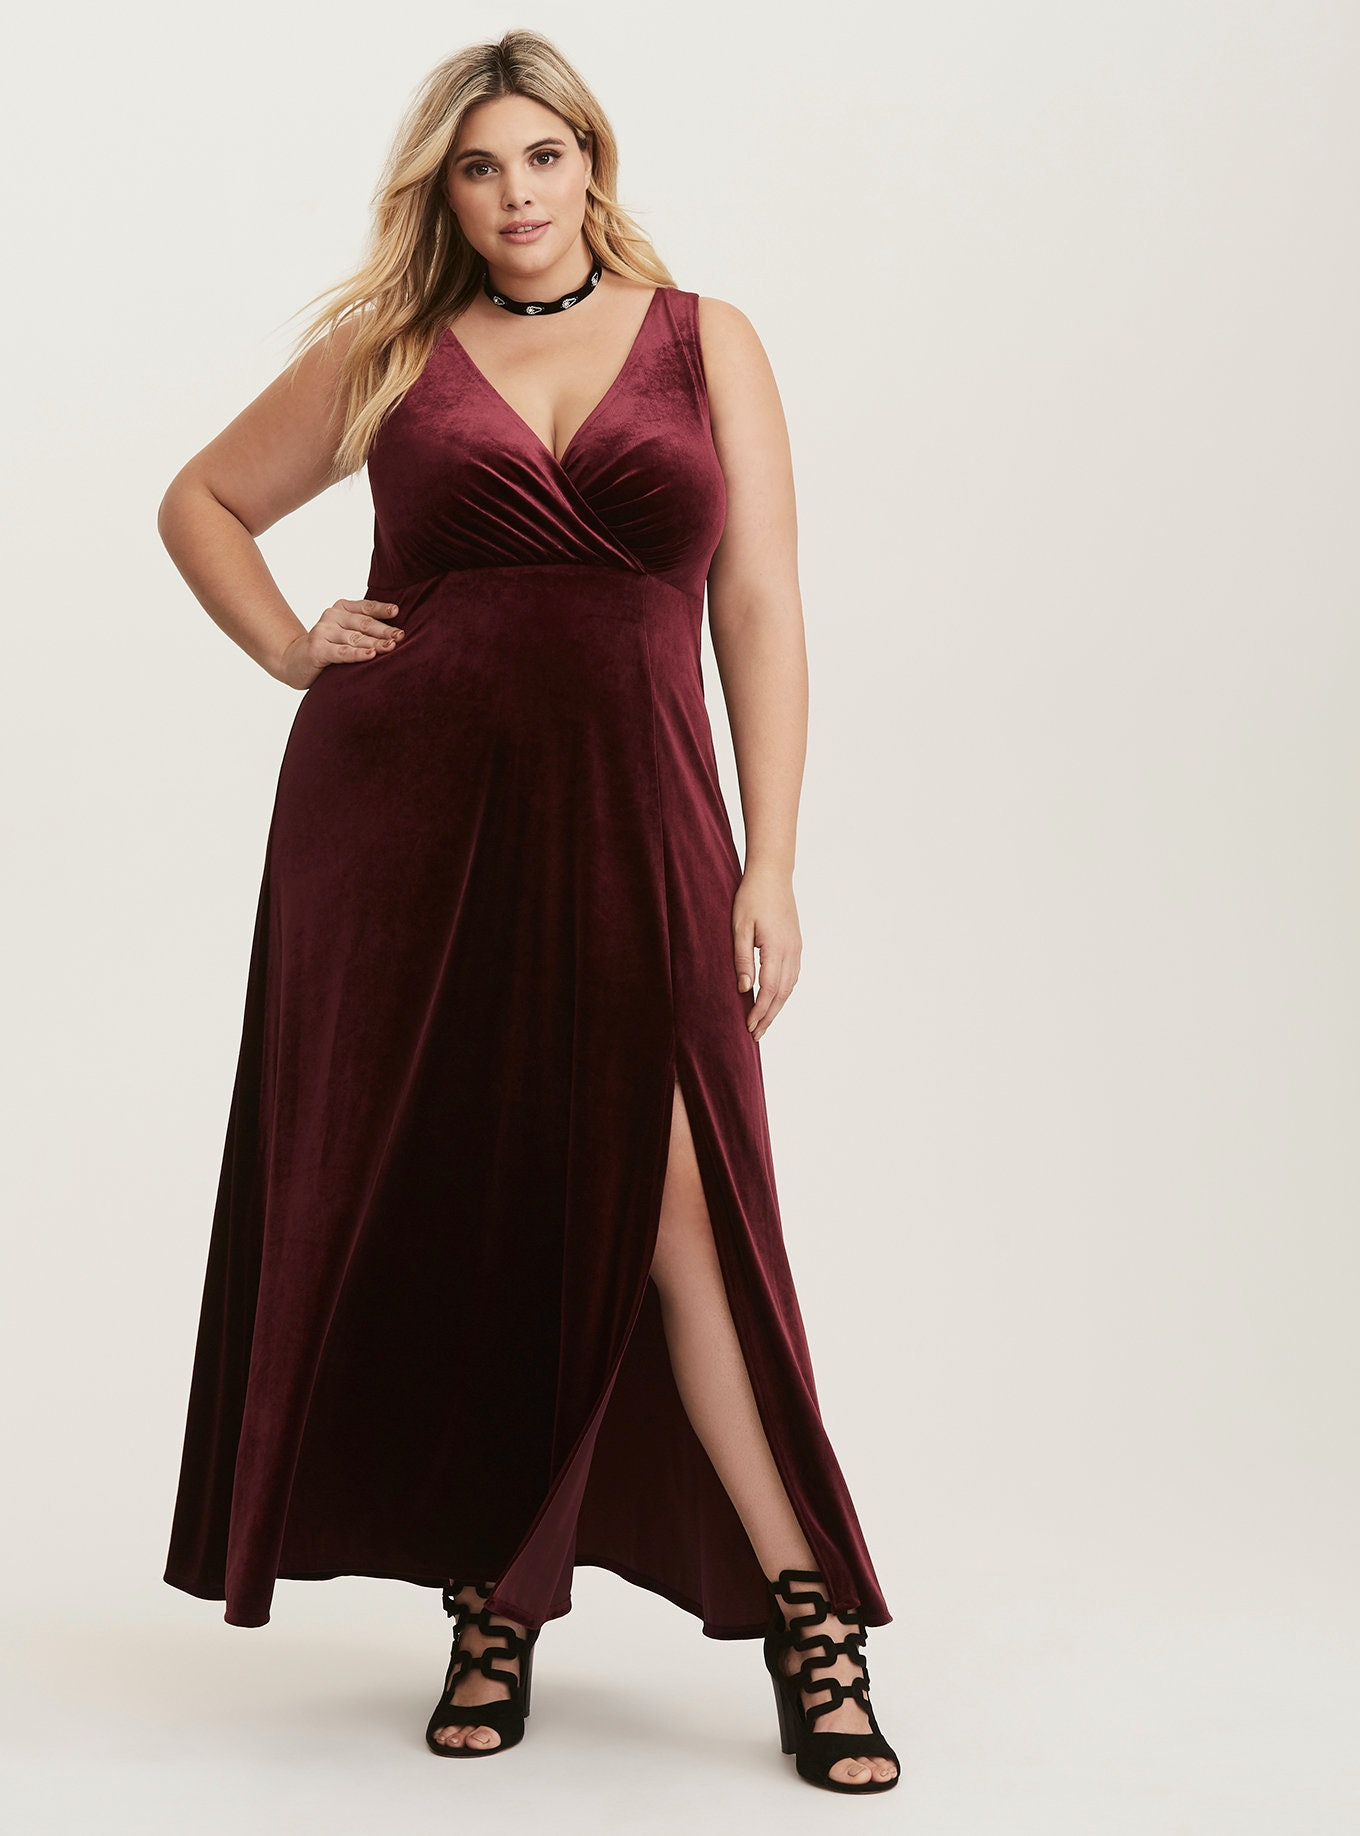 21683888109 50 Plus Size Holiday Dresses That Deserve A Spot In Your Closet